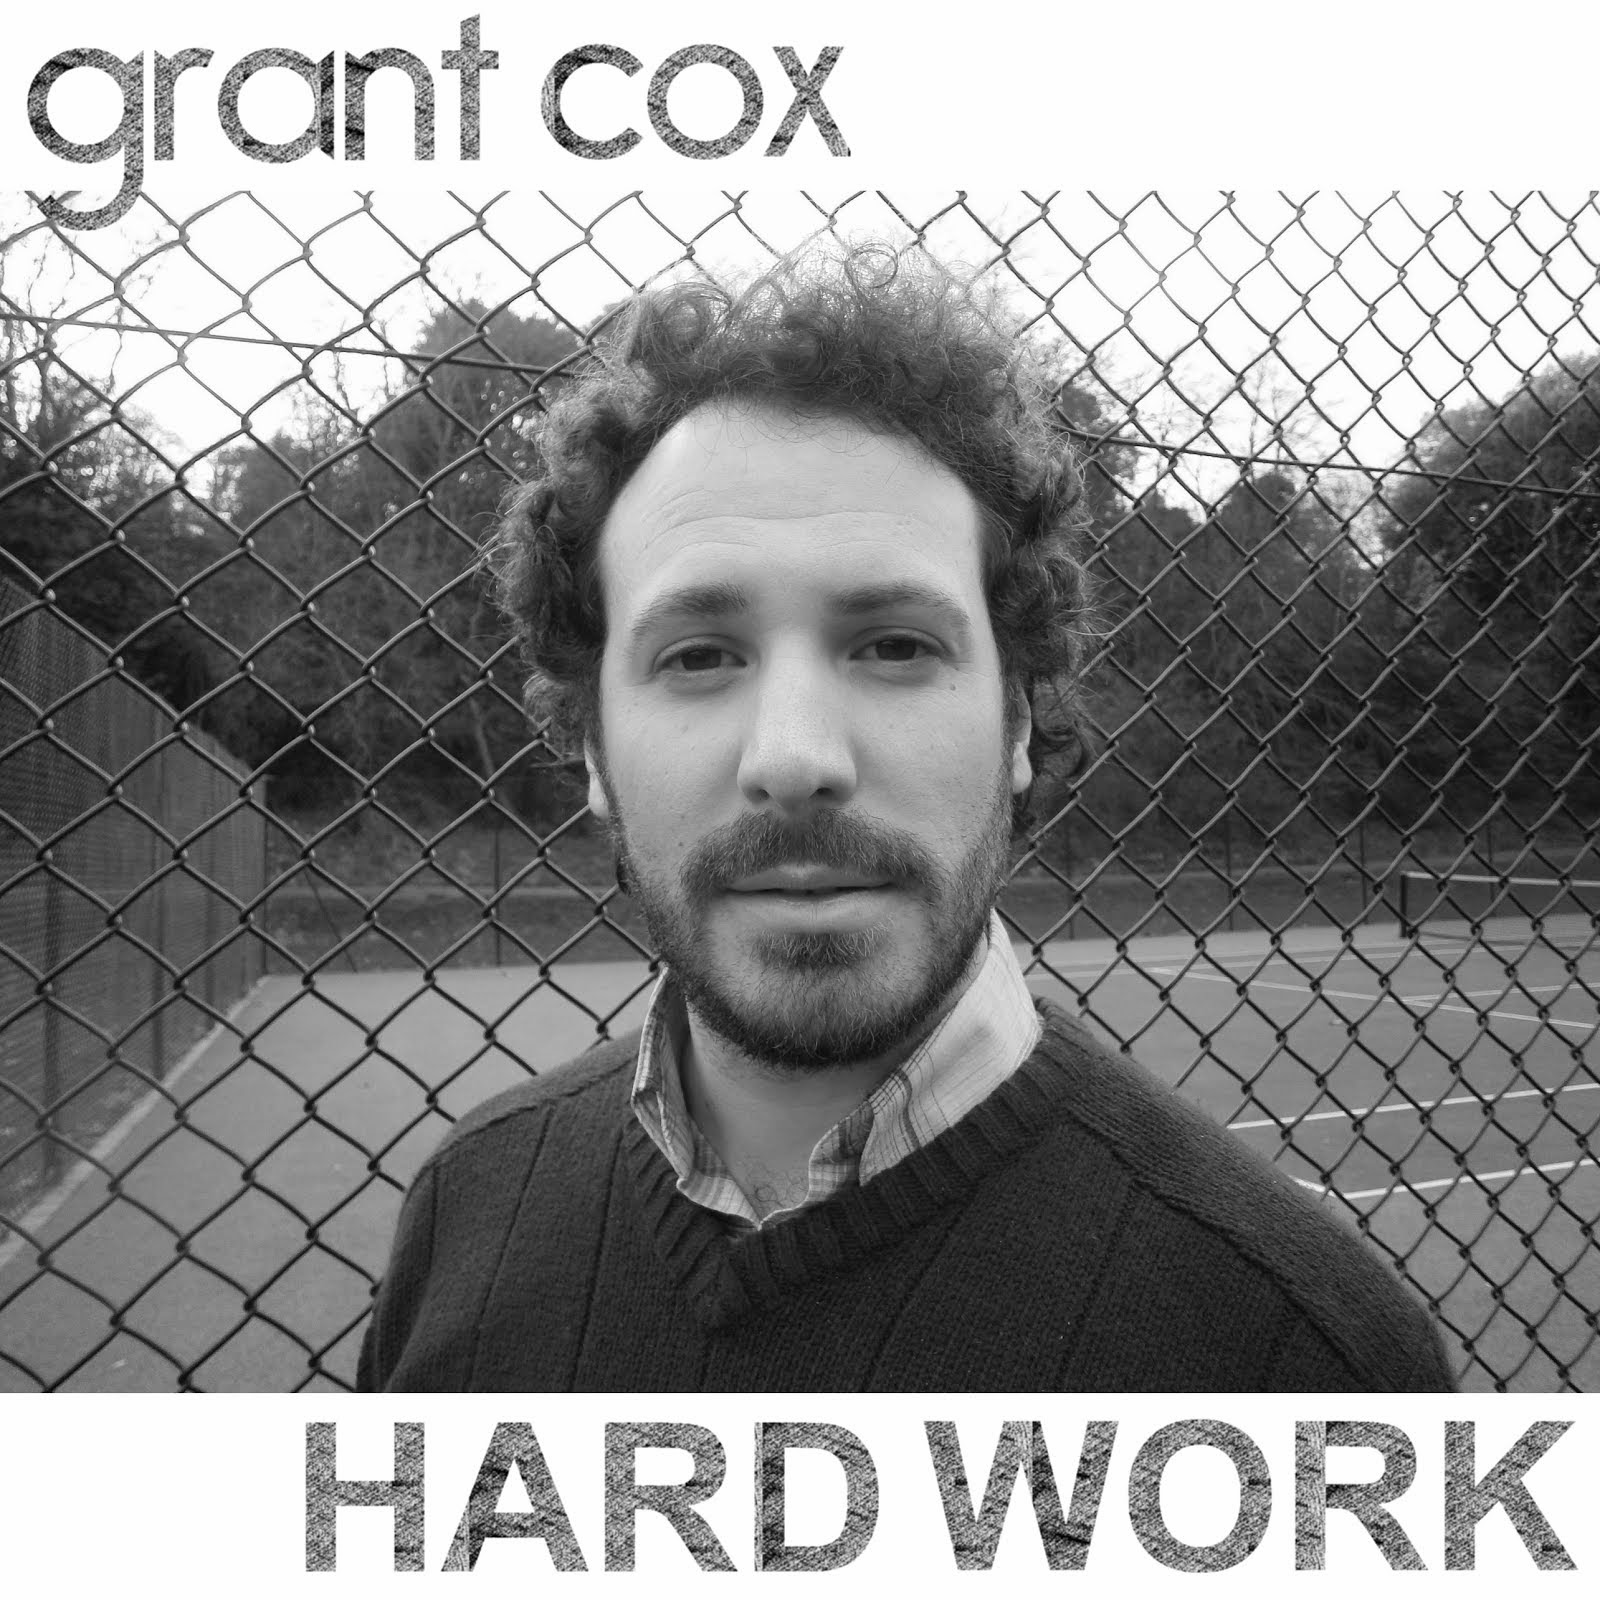 ALSO AVAILABLE - 'HARD WORK' (SINGLE)